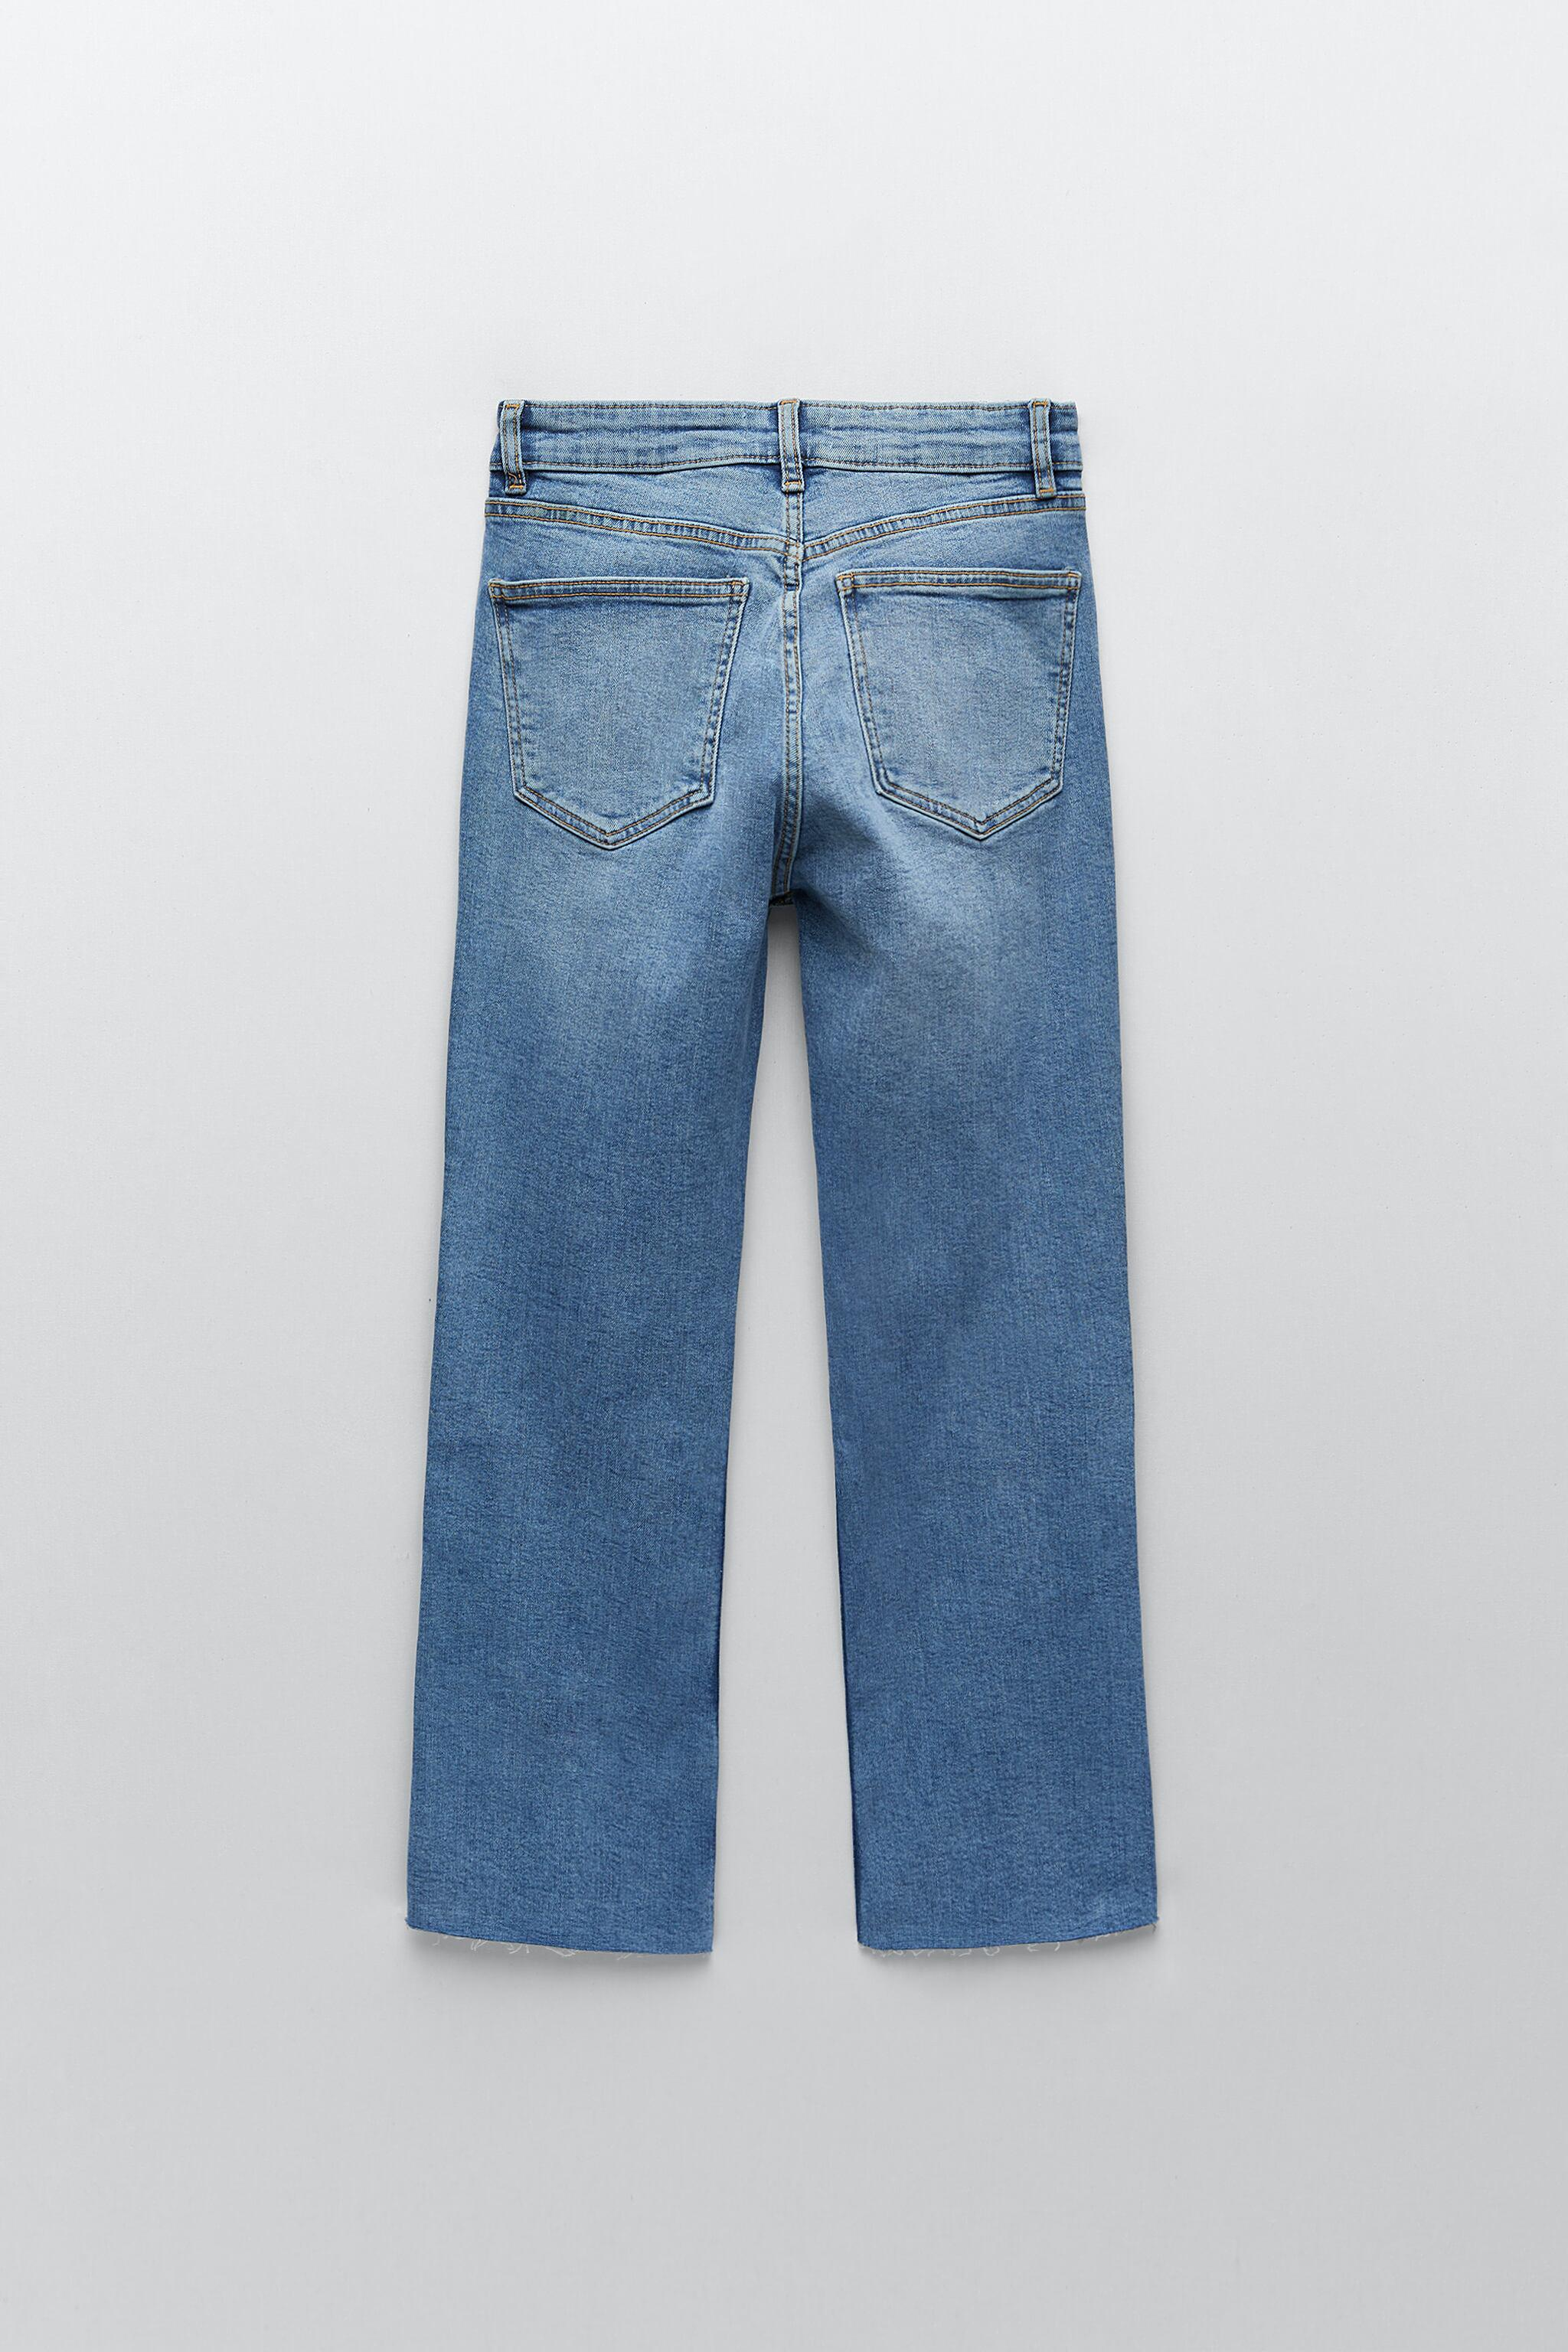 CROPPED FLARE JEANS 6